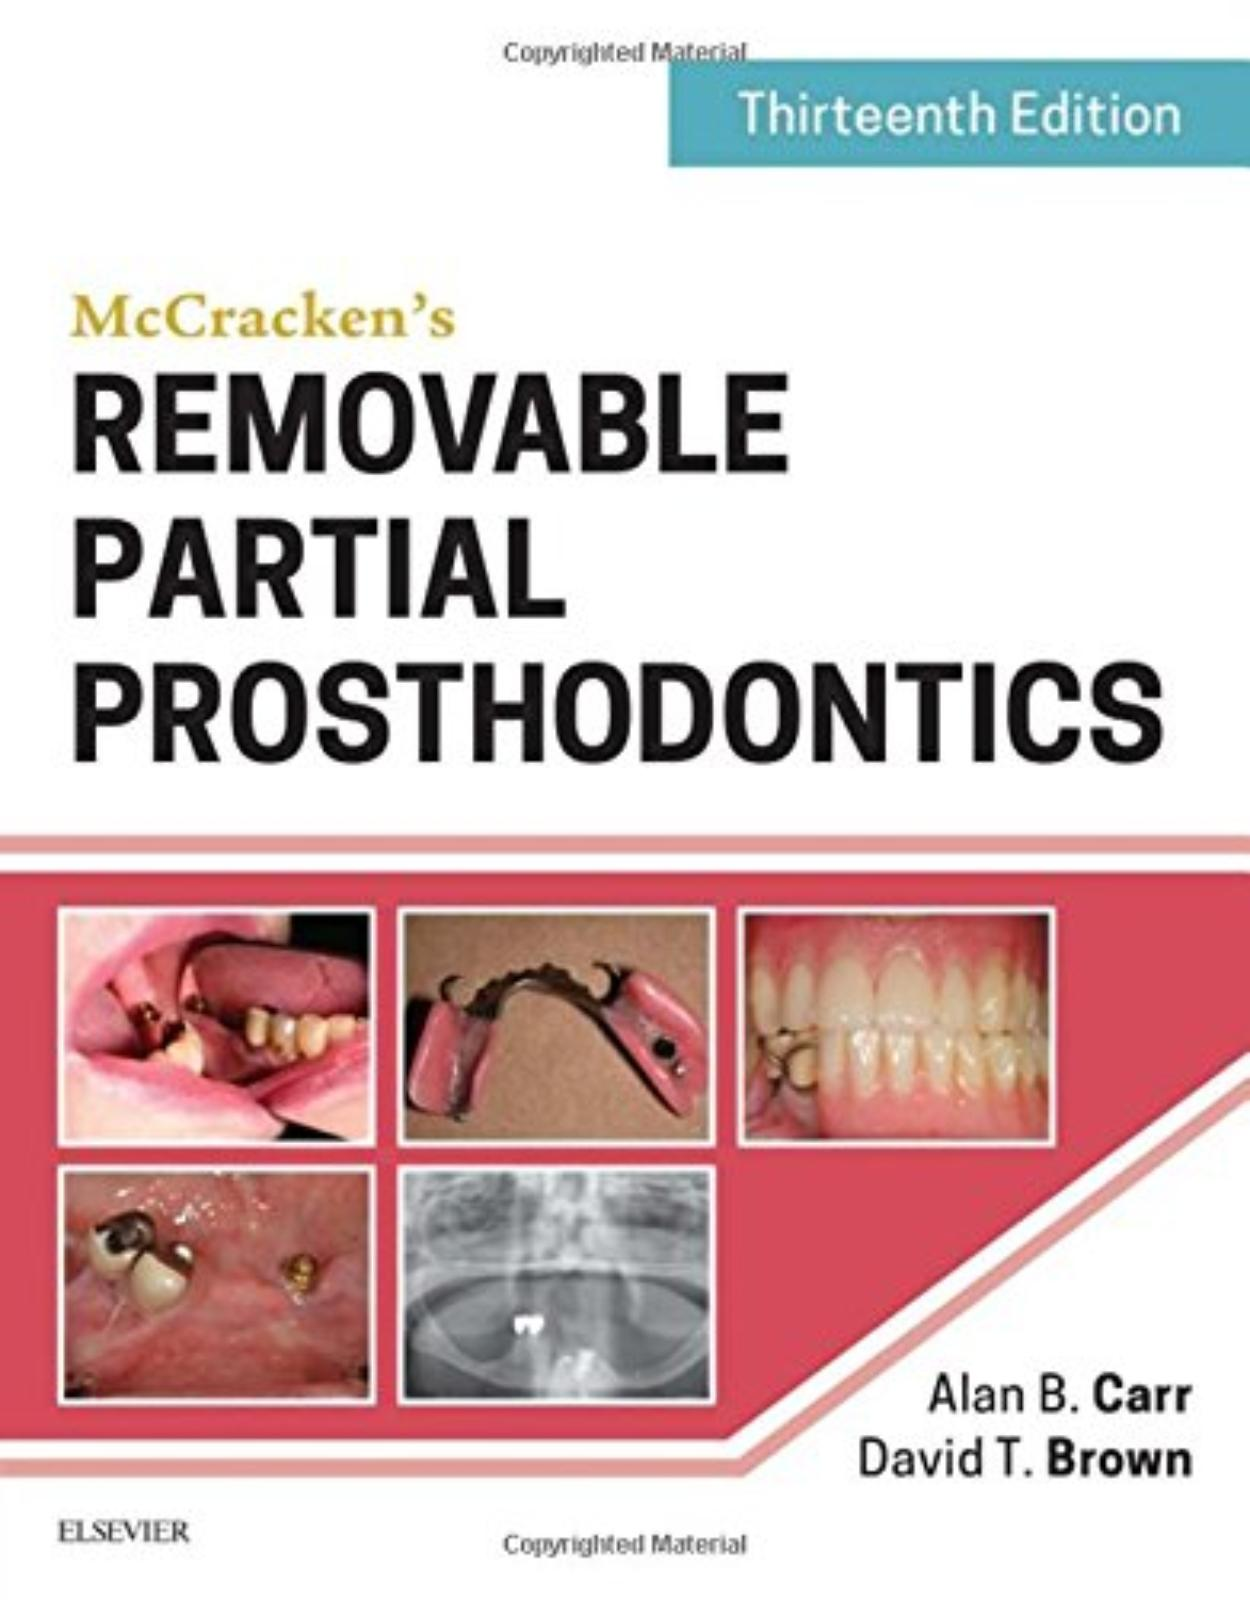 McCrackens Removable Partial Prosthodontics , 13th Edition